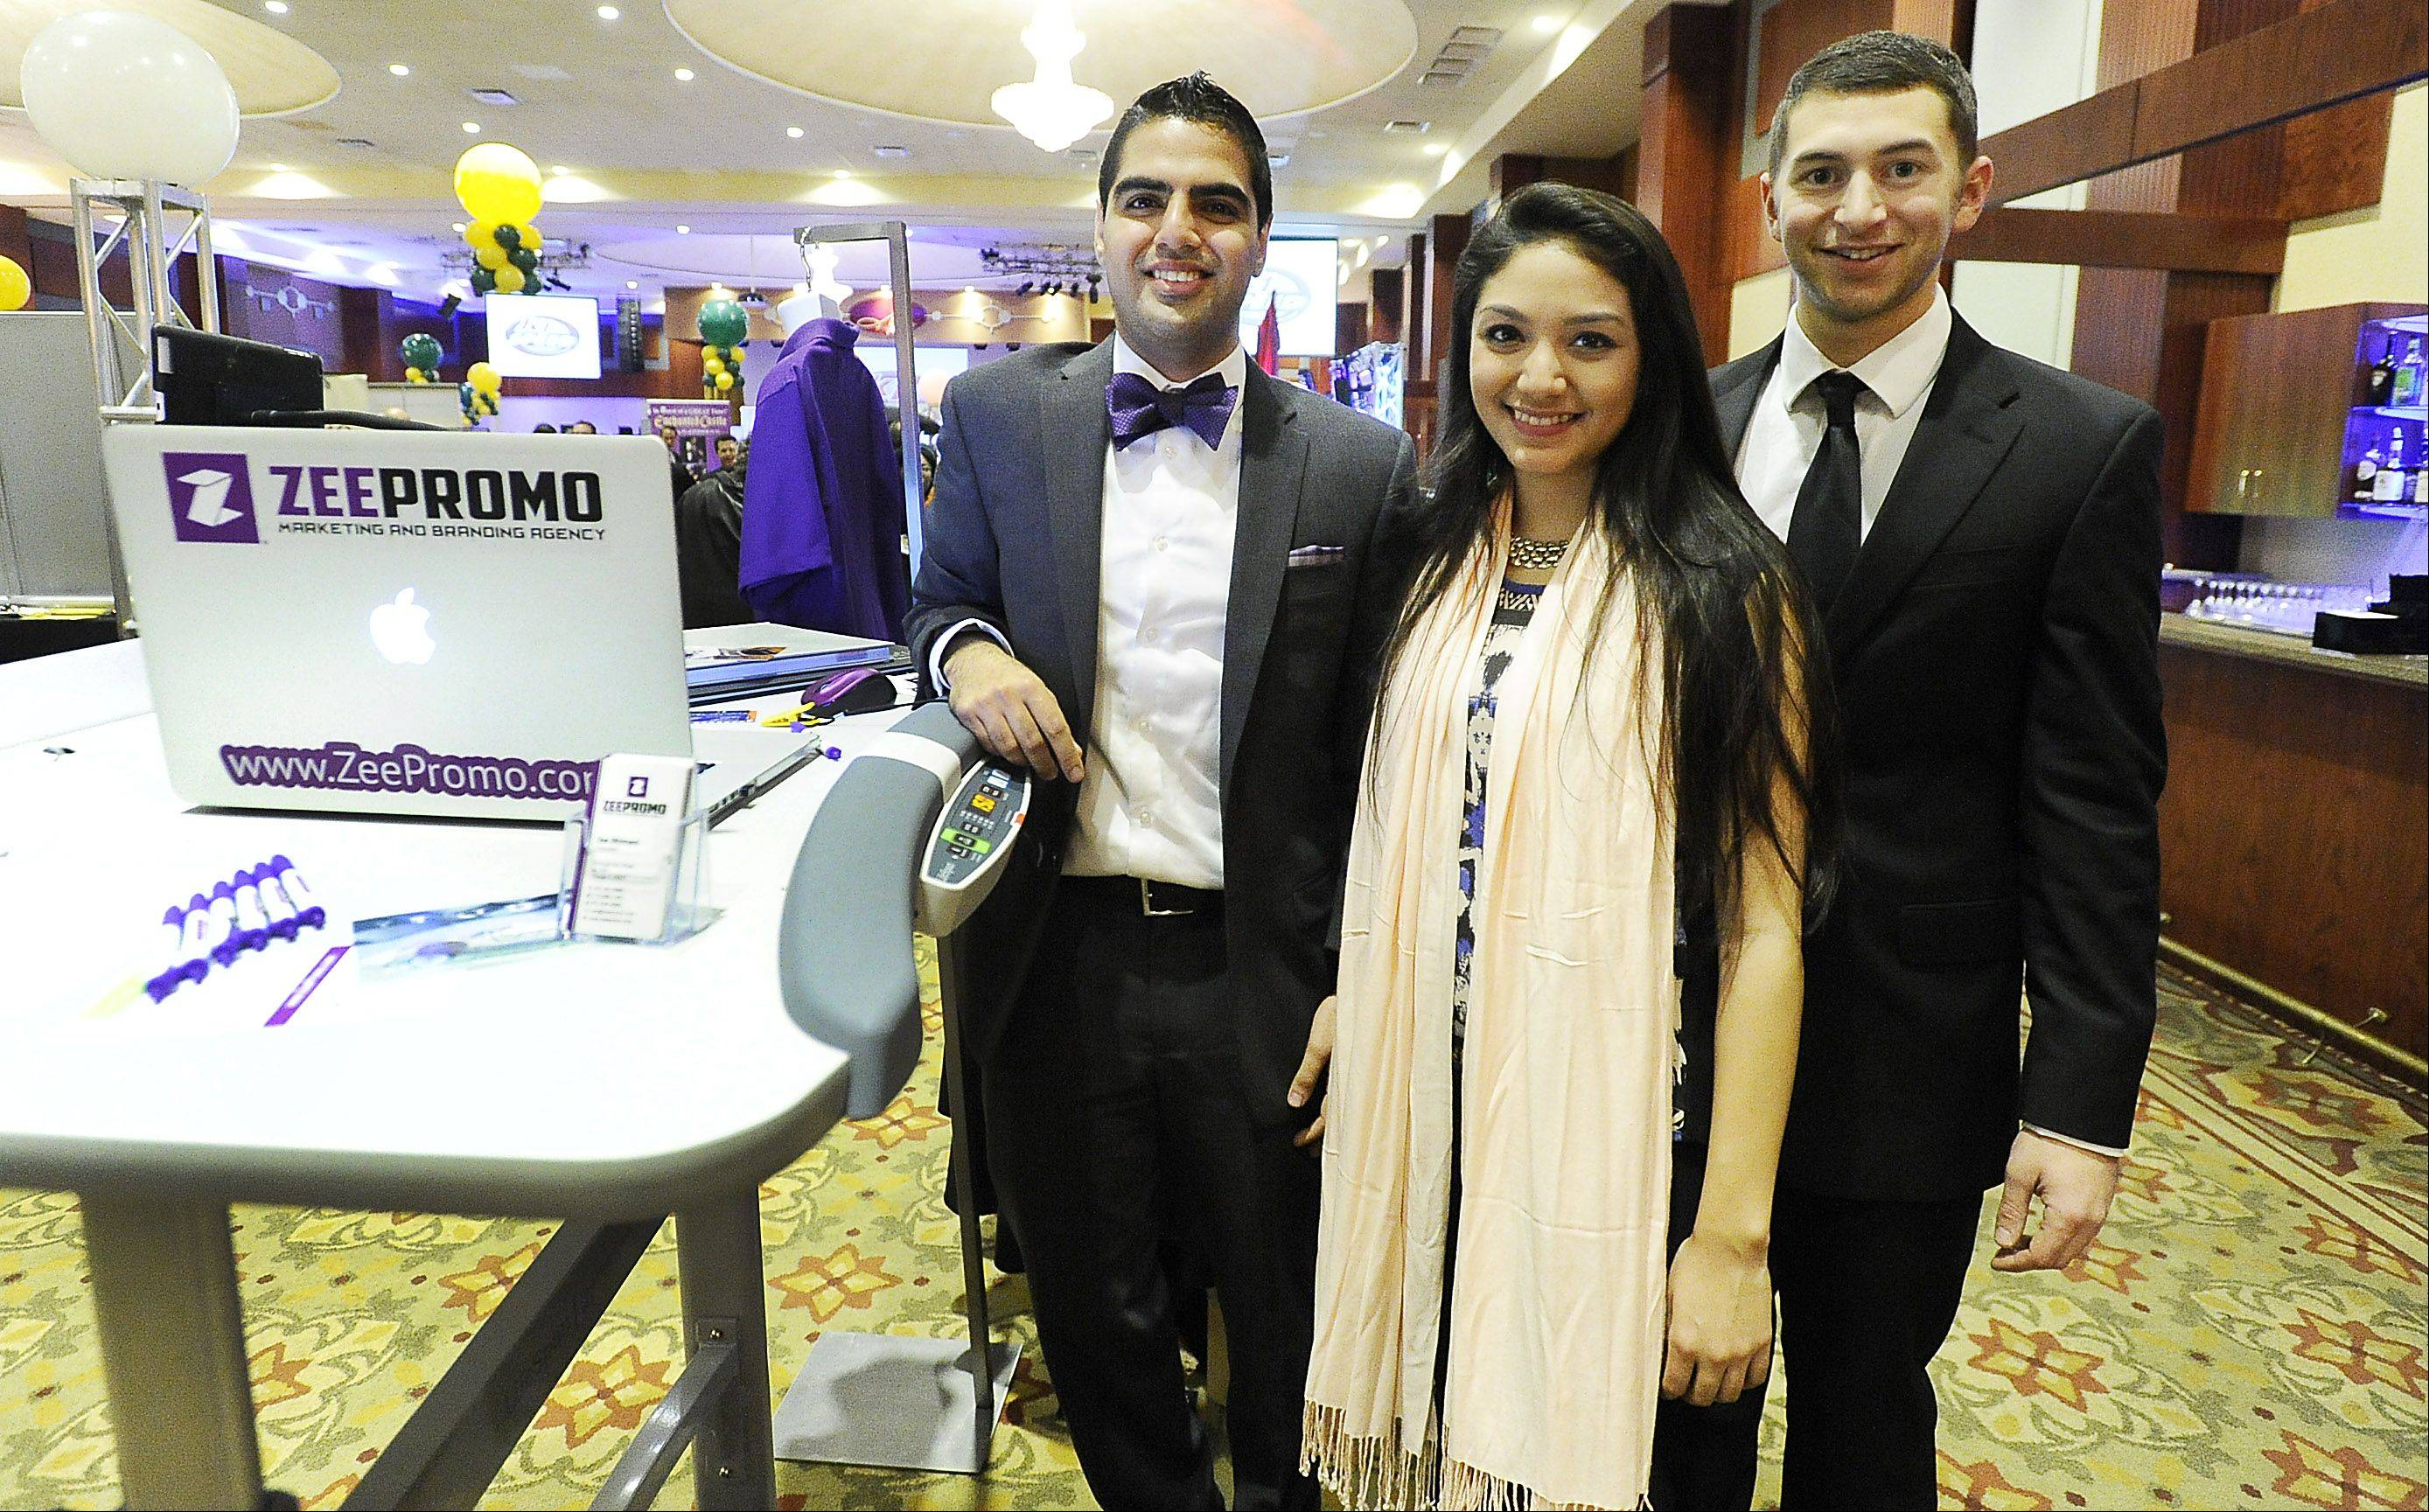 Zee Bhimani, a consultant, along with Betzabel Mendez and Daniel Pessah of ZeePromo Marketing and Branding Agency of Chicago, show off their products Thursday at Northwest Hospitality Expo 2013 at the Meadows Club in Rolling Meadows.